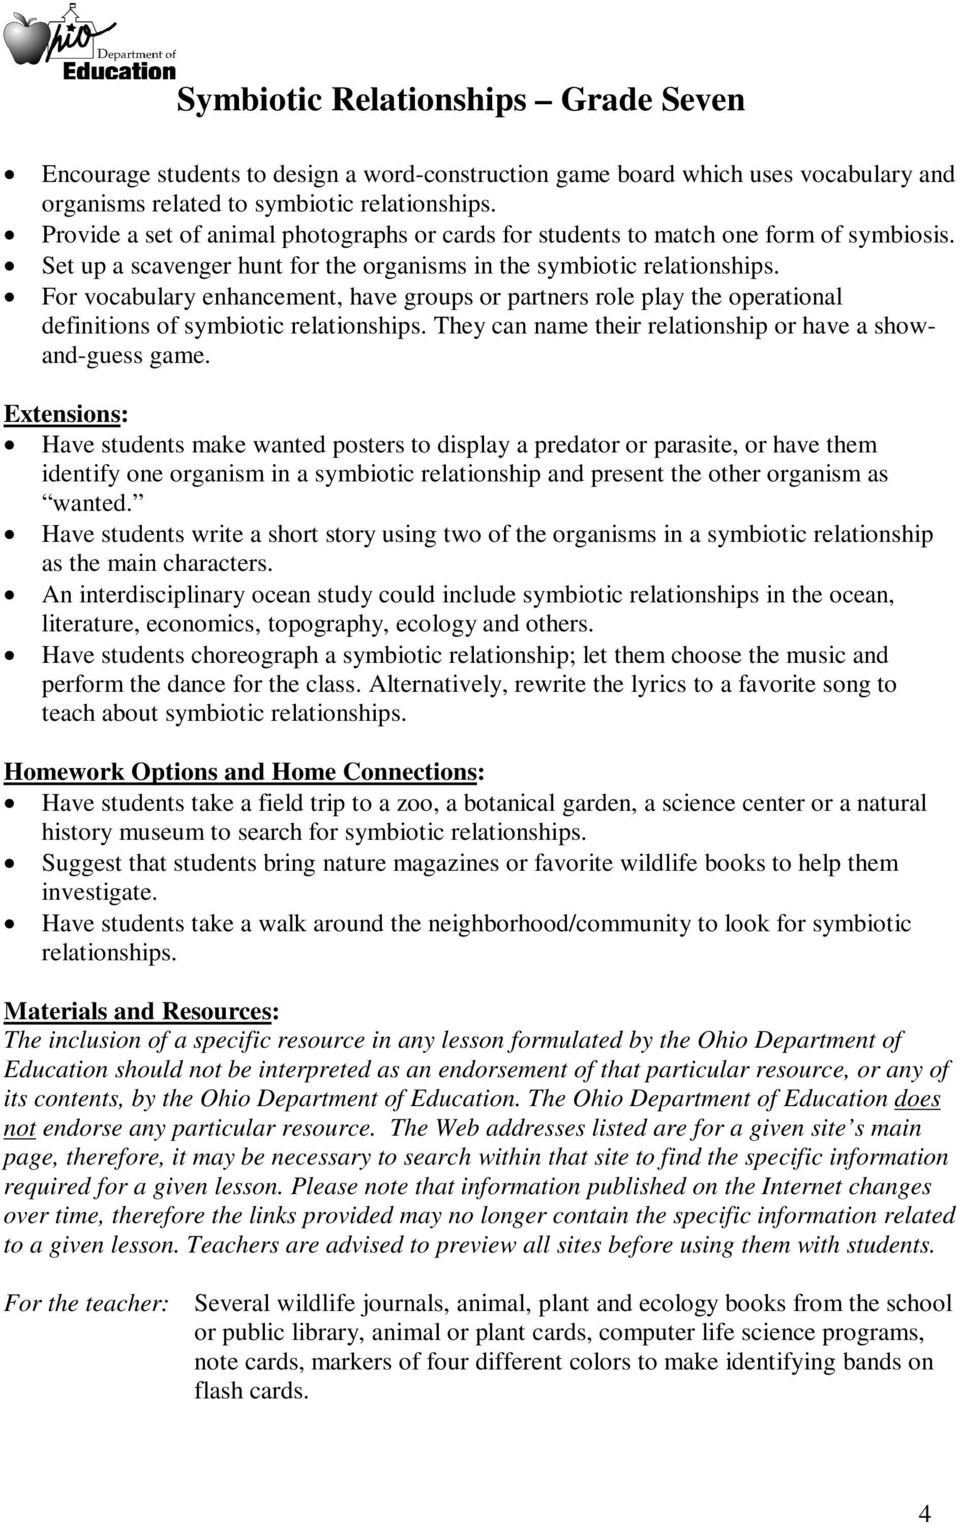 Symbiotic Relationships Worksheet Good Buddies Might Need some assist with Essay